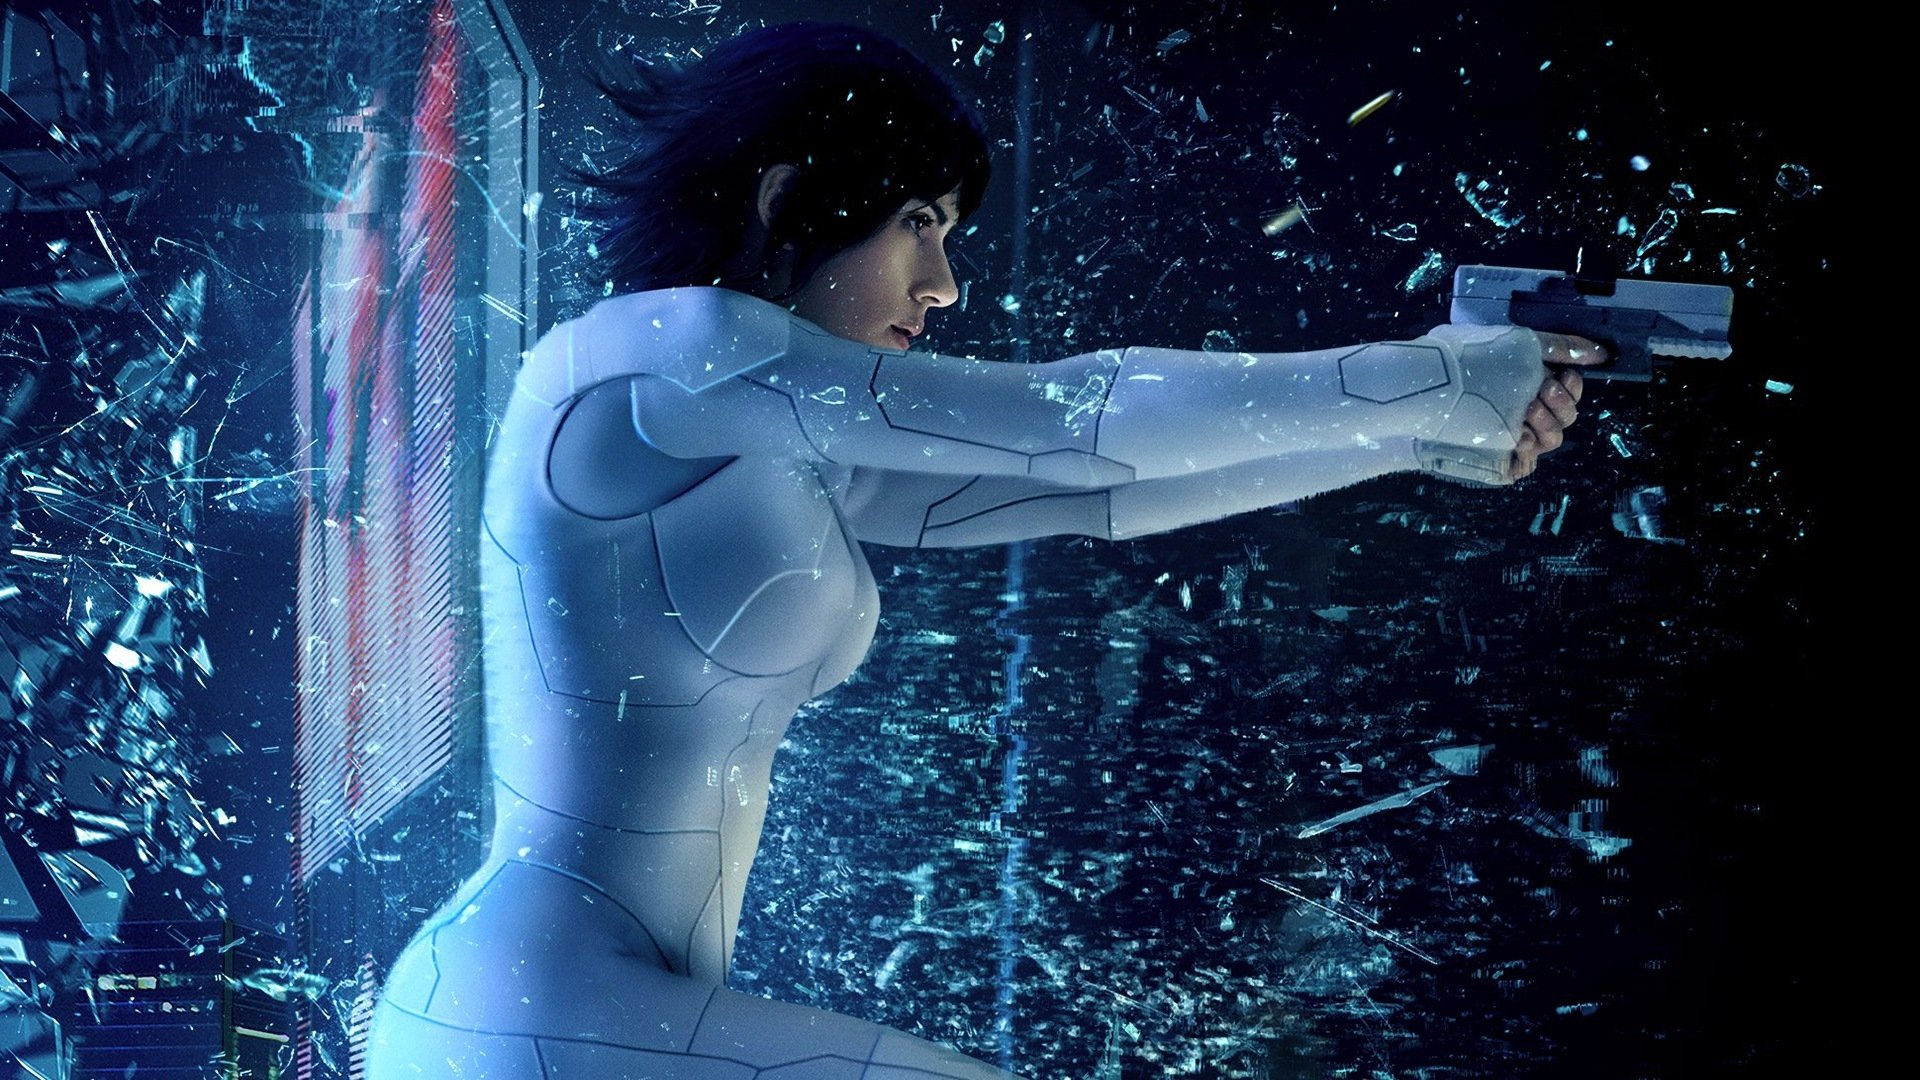 Ghost In The Shell Desktop Wallpaper 61265 1920x1080px